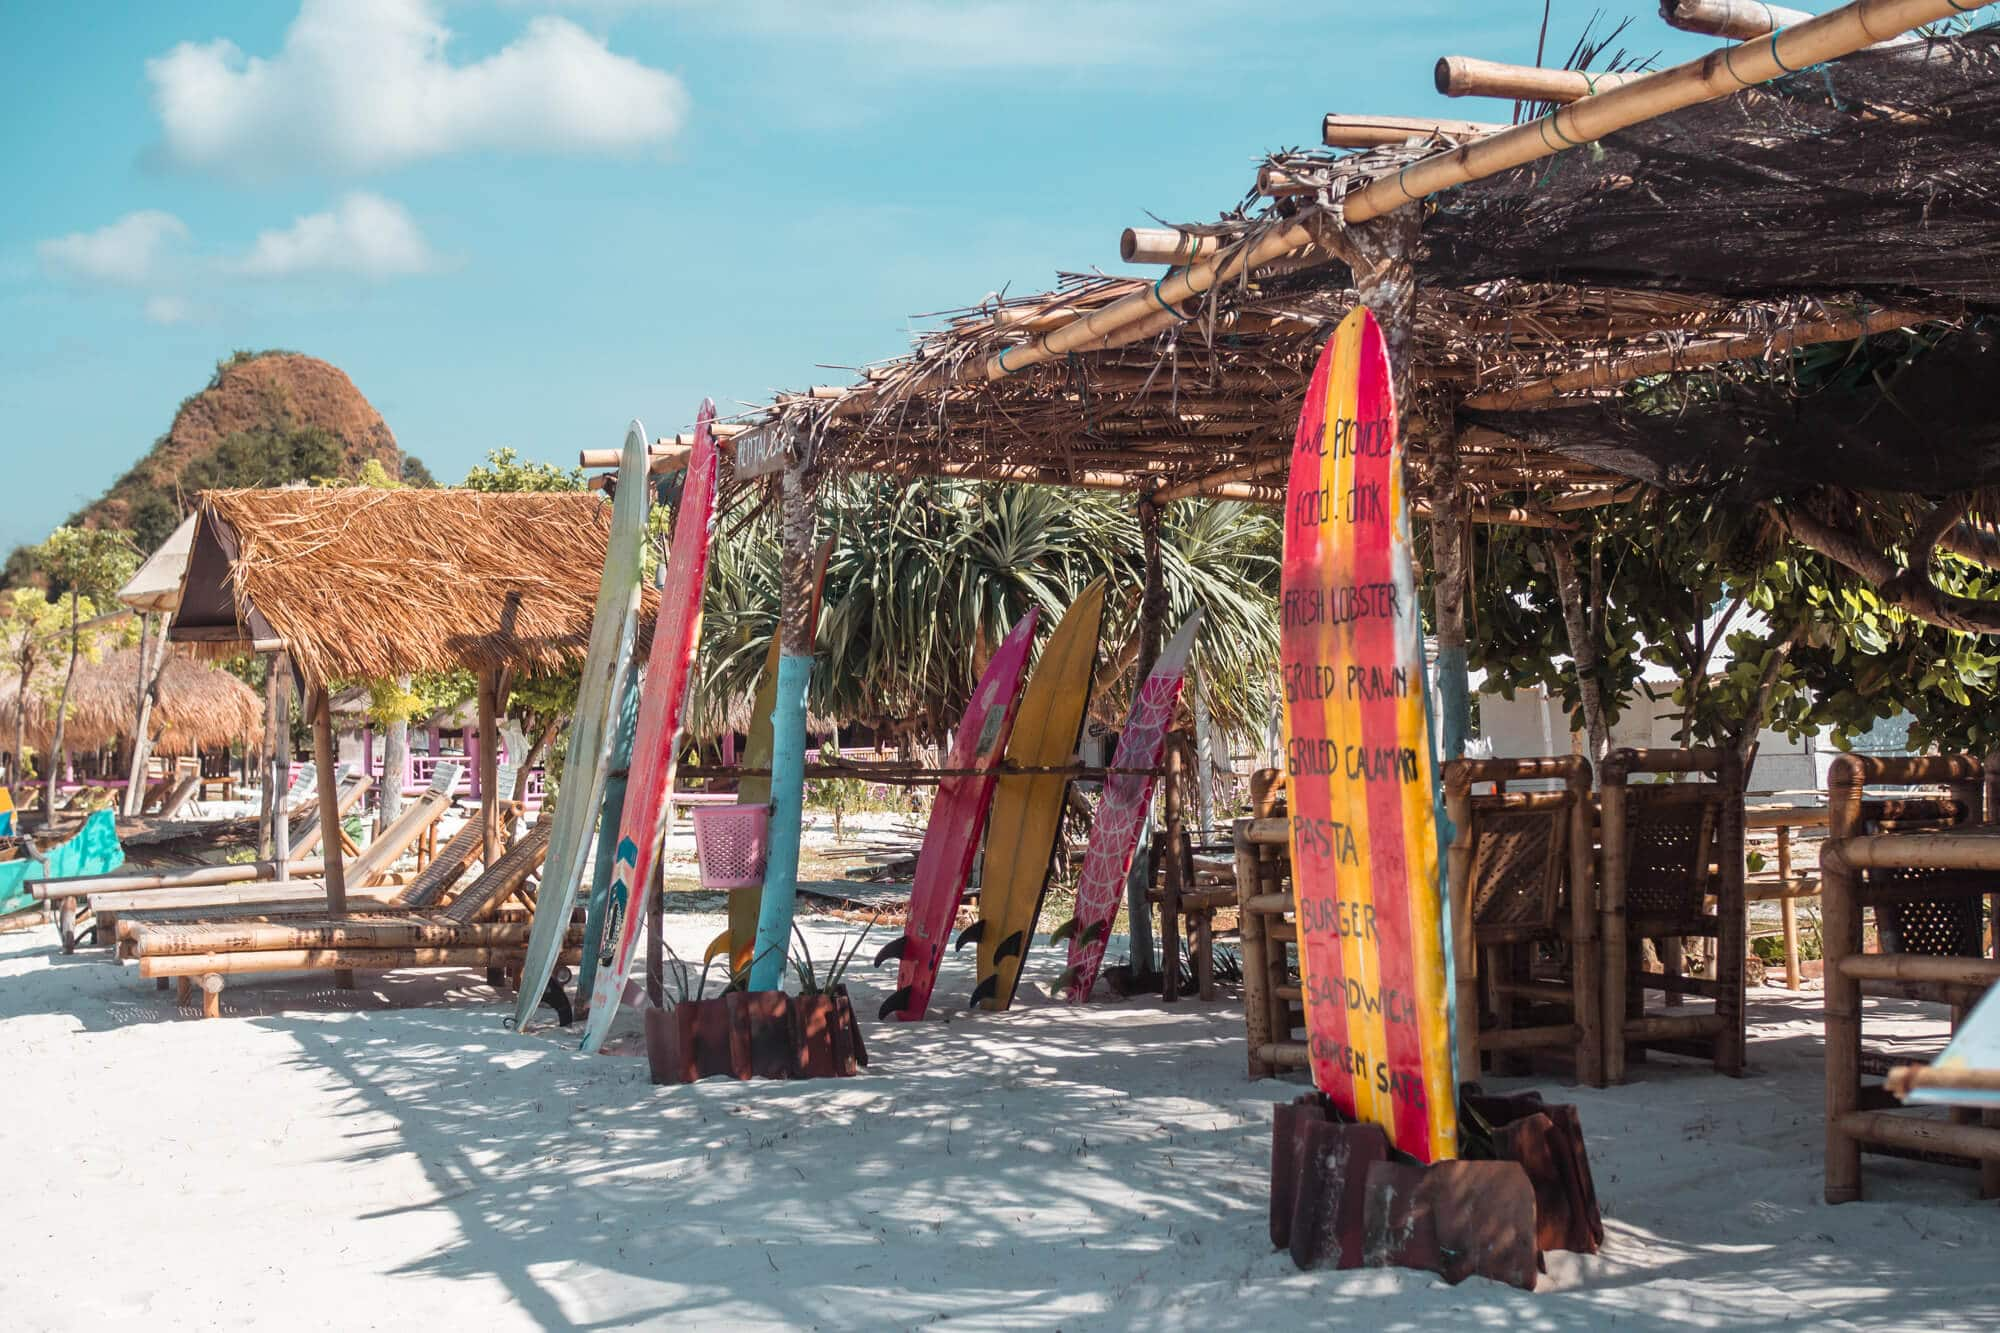 Top 5 things to do in Lombok - Spend the day at Warung Surfer Beach on Pantai Tanjung Aan #lombok